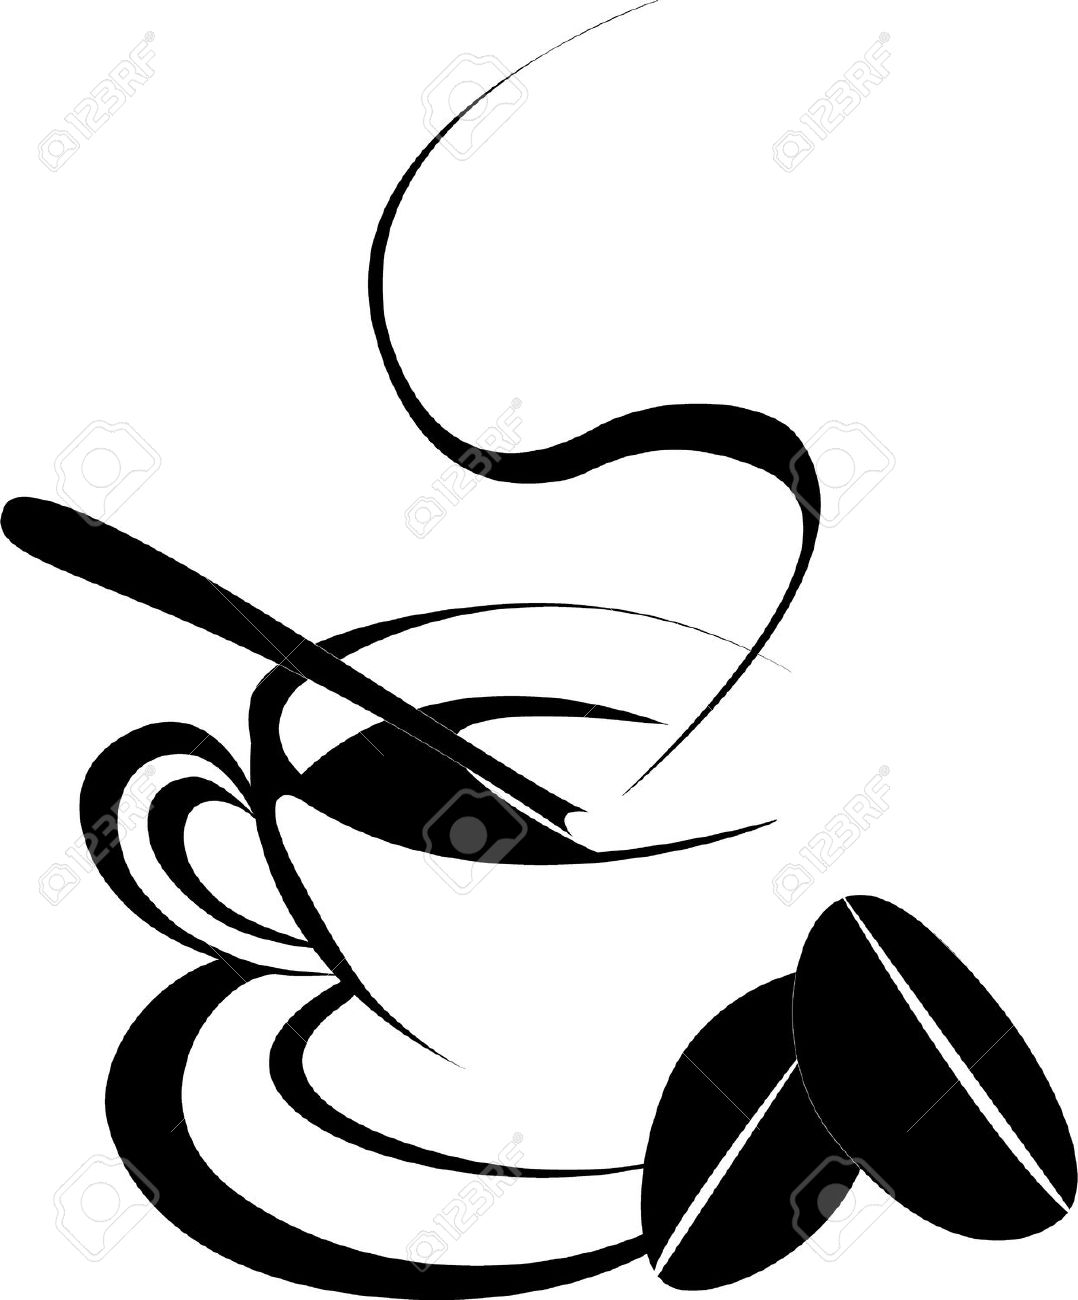 Coffee Bean Clipart Black And White | Free download on ...